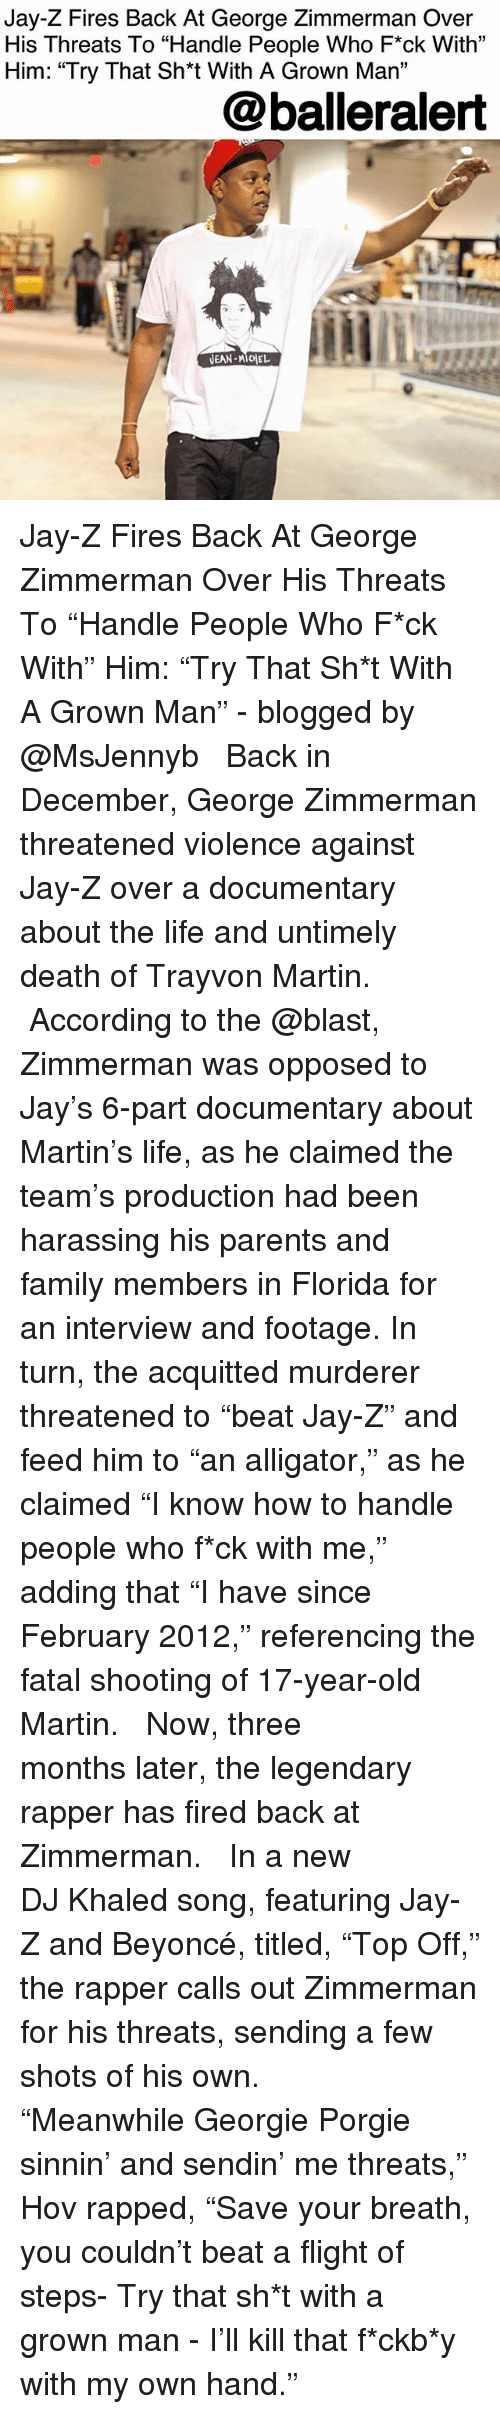 "Beyonce, DJ Khaled, and Family: Jay-Z Fires Back At George Zimmerman Over  His Threats To ""Handle People Who F*ck With""  Him: ""Try That Sh*t With A Grown Ma""  31  @balleralert Jay-Z Fires Back At George Zimmerman Over His Threats To ""Handle People Who F*ck With"" Him: ""Try That Sh*t With A Grown Man"" - blogged by @MsJennyb ⠀⠀⠀⠀⠀⠀⠀ ⠀⠀⠀⠀⠀⠀⠀ Back in December, George Zimmerman threatened violence against Jay-Z over a documentary about the life and untimely death of Trayvon Martin. ⠀⠀⠀⠀⠀⠀⠀ ⠀⠀⠀⠀⠀⠀⠀ According to the @blast, Zimmerman was opposed to Jay's 6-part documentary about Martin's life, as he claimed the team's production had been harassing his parents and family members in Florida for an interview and footage. In turn, the acquitted murderer threatened to ""beat Jay-Z"" and feed him to ""an alligator,"" as he claimed ""I know how to handle people who f*ck with me,"" adding that ""I have since February 2012,"" referencing the fatal shooting of 17-year-old Martin. ⠀⠀⠀⠀⠀⠀⠀ ⠀⠀⠀⠀⠀⠀⠀ Now, three months later, the legendary rapper has fired back at Zimmerman. ⠀⠀⠀⠀⠀⠀⠀ ⠀⠀⠀⠀⠀⠀⠀ In a new DJ Khaled song, featuring Jay-Z and Beyoncé, titled, ""Top Off,"" the rapper calls out Zimmerman for his threats, sending a few shots of his own. ⠀⠀⠀⠀⠀⠀⠀ ⠀⠀⠀⠀⠀⠀⠀ ""Meanwhile Georgie Porgie sinnin' and sendin' me threats,"" Hov rapped, ""Save your breath, you couldn't beat a flight of steps- Try that sh*t with a grown man - I'll kill that f*ckb*y with my own hand."""